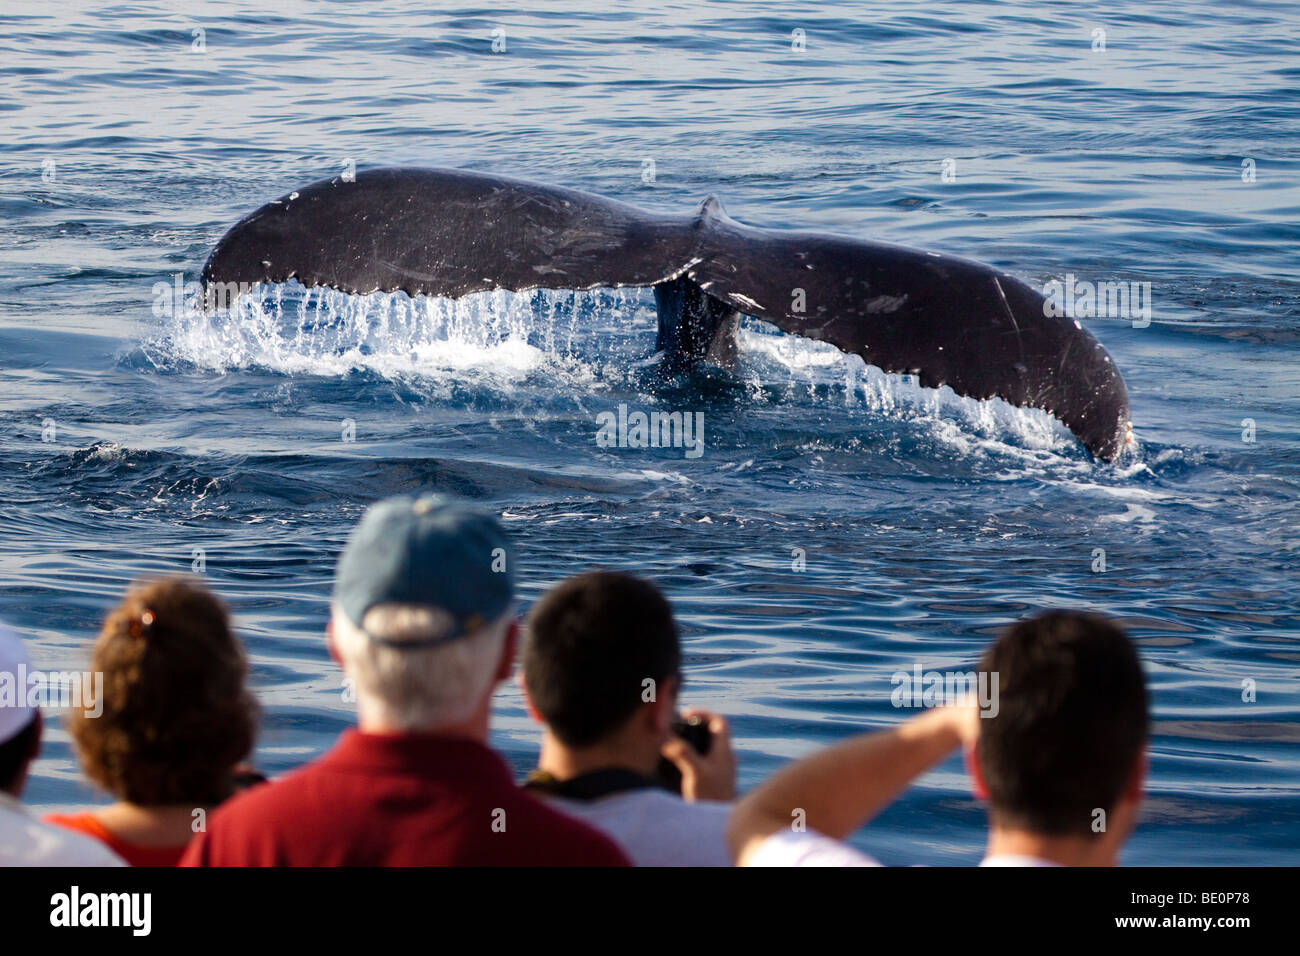 Passengers (MR) on a whale watching boat out of Lahaina, Maui, and the tail of a humpback whale, Megaptera novaeangliae, - Stock Image